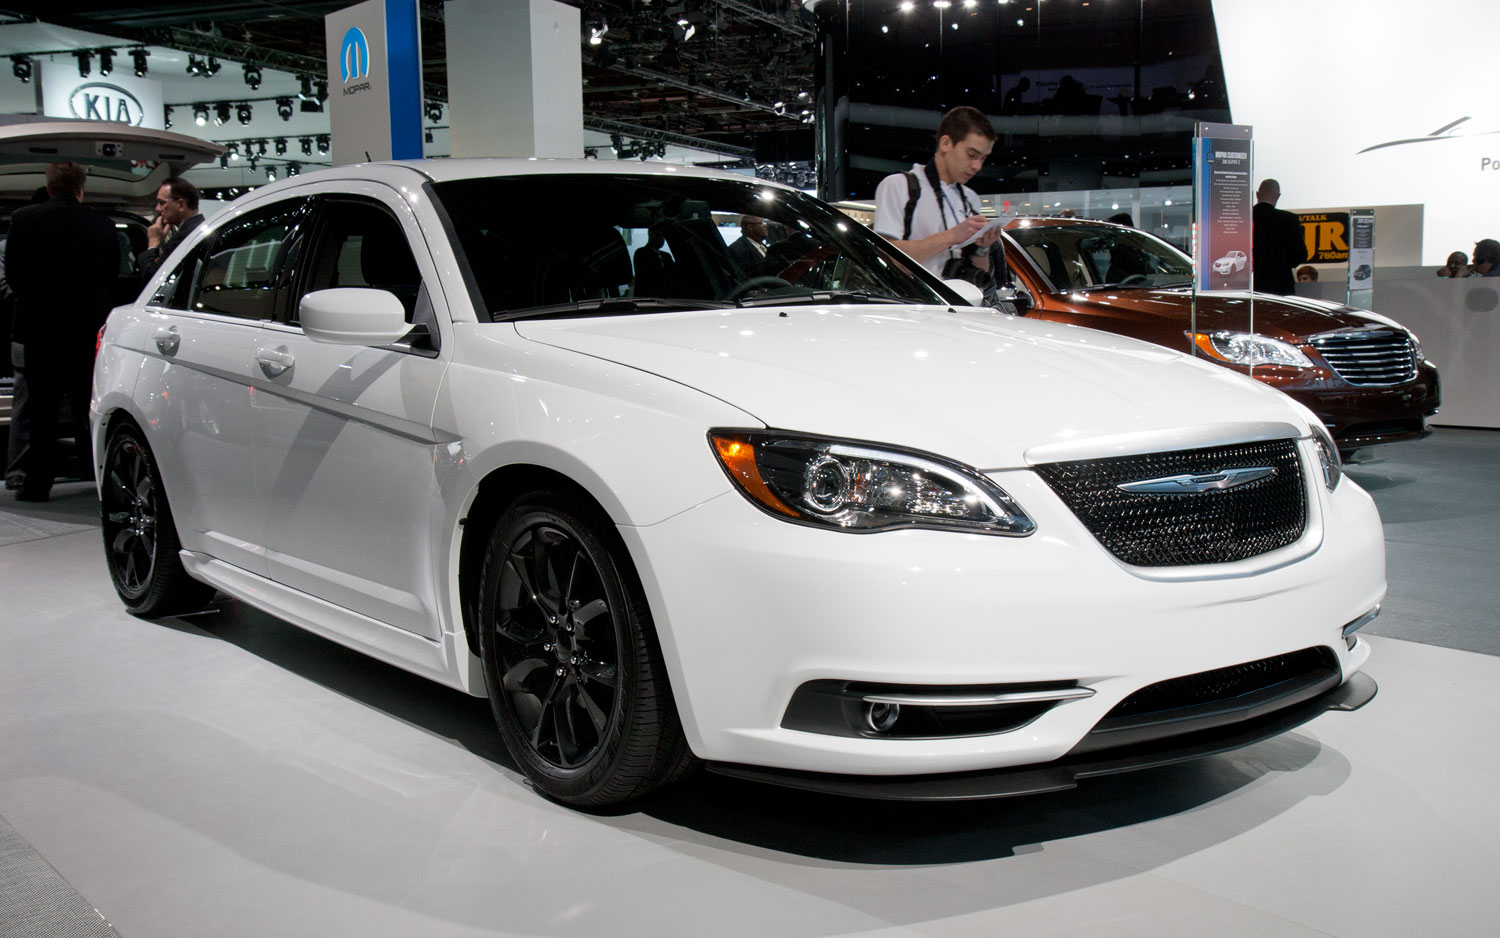 2012 Chrysler 200 Super S Front View12